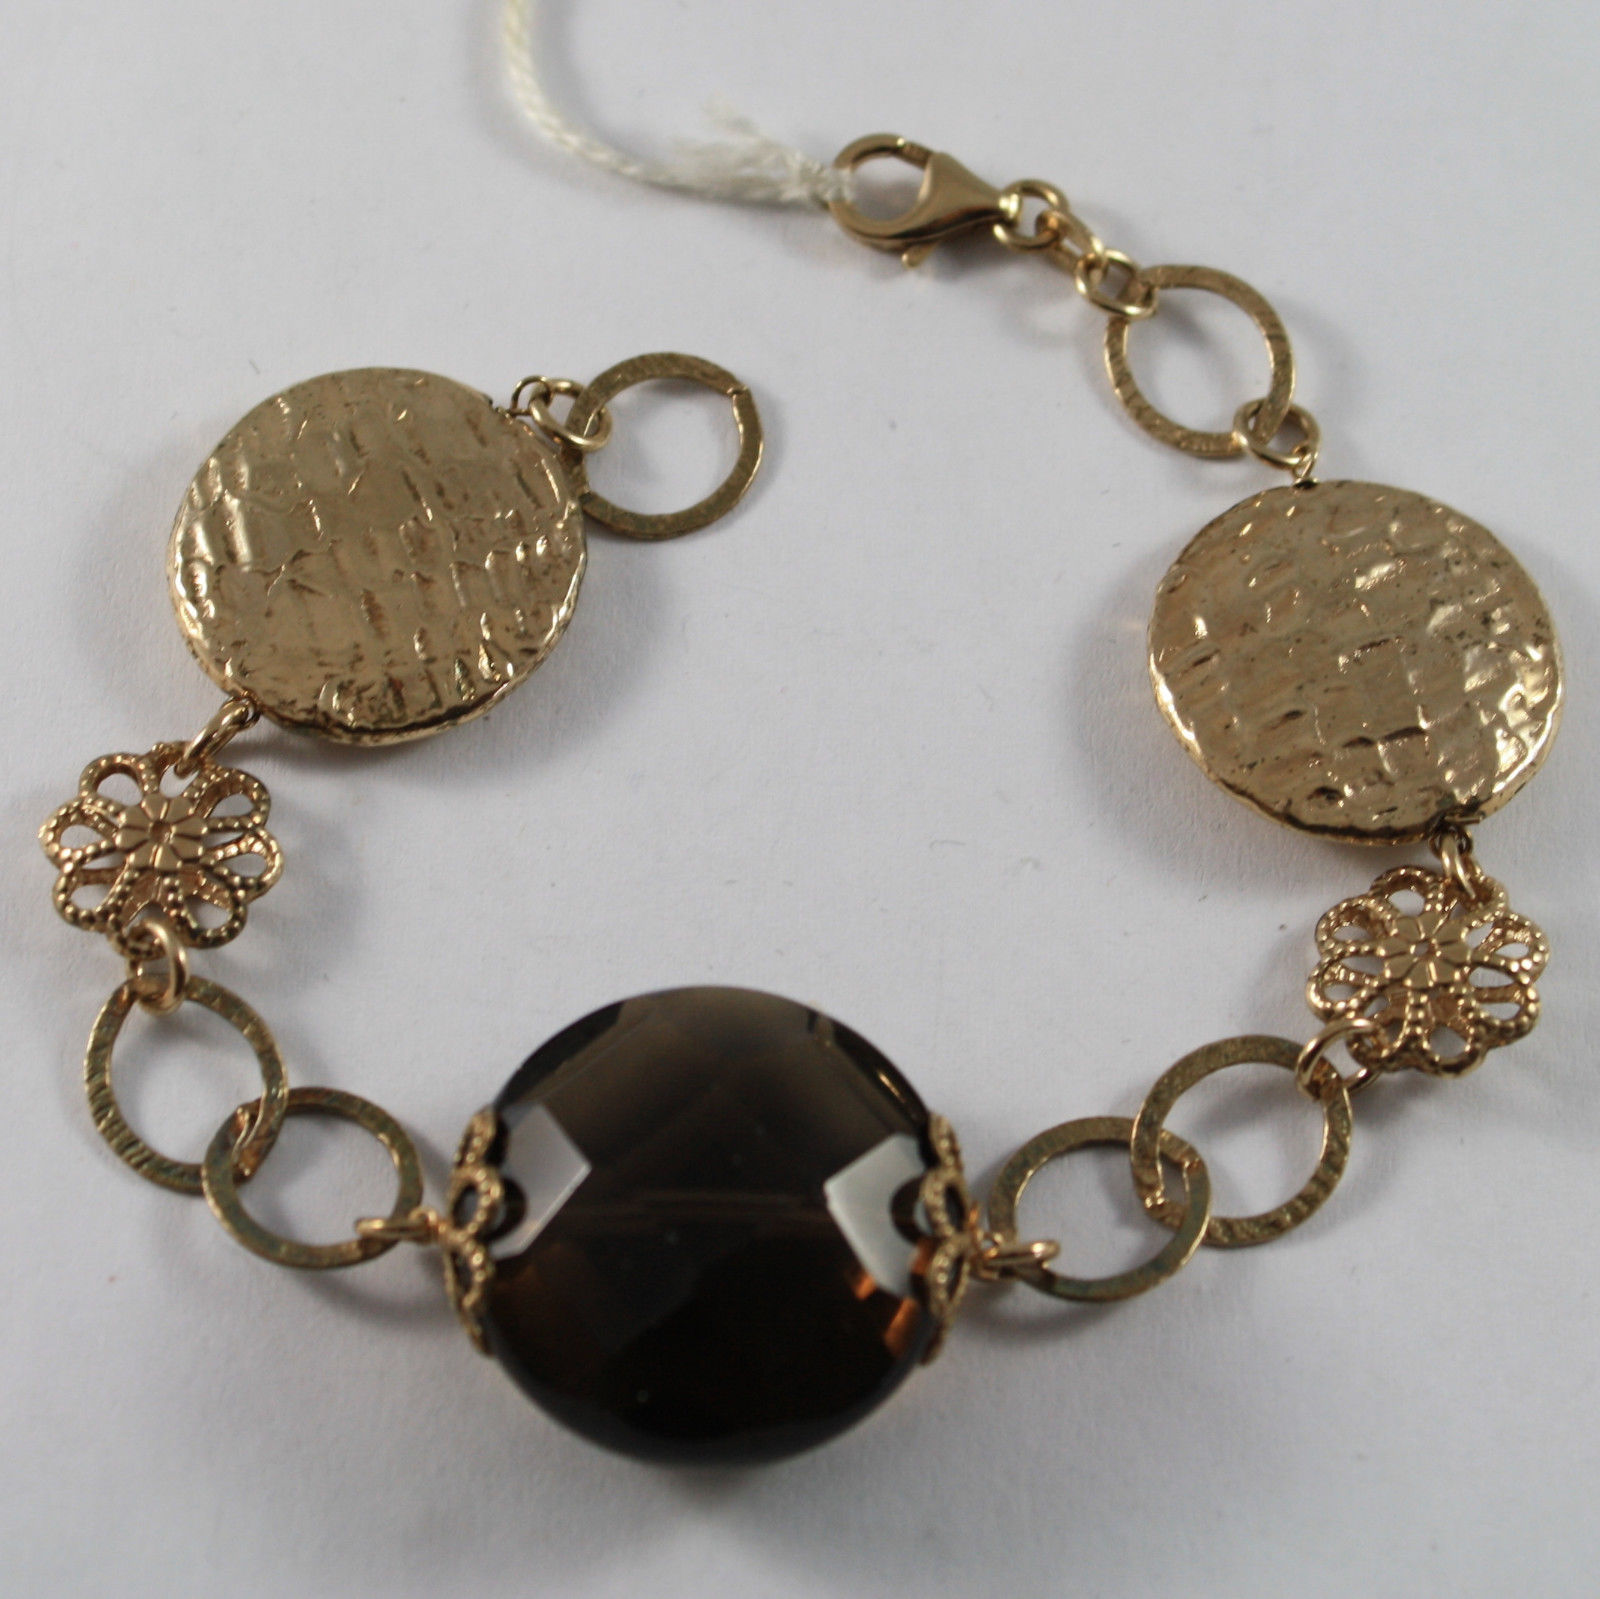 .925 RHODIUM SILVER YELLOW GOLD PLATED BRACELET WITH SMOKY QUARTZ